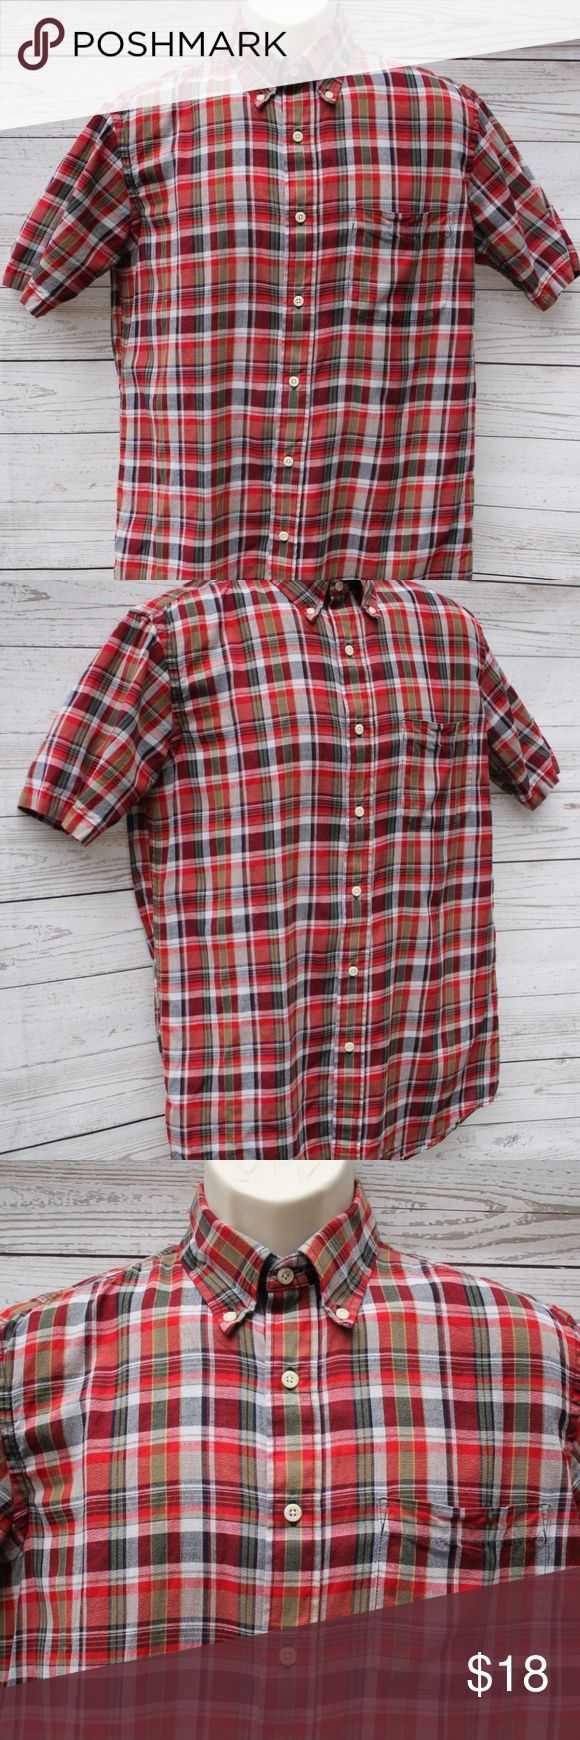 """Pendleton Mens Size Small Seaside Shirt Pendleton Mens Small Seaside Shirt Red Plaid Short Sleeve Cotton Button Down  All measurements are approximate and taken unstretched and laying flat.  Chest: 42"""" Length: 31"""" Sleeve: 16.5""""  EUC no rips or stains  If you have any questions, please don't hesitate to send me a message. Please feel free to check out the other items listed in my store  Note to Buyers: **Colors may vary slightly from photos of item, due to lighting, camera, editing, screens…"""